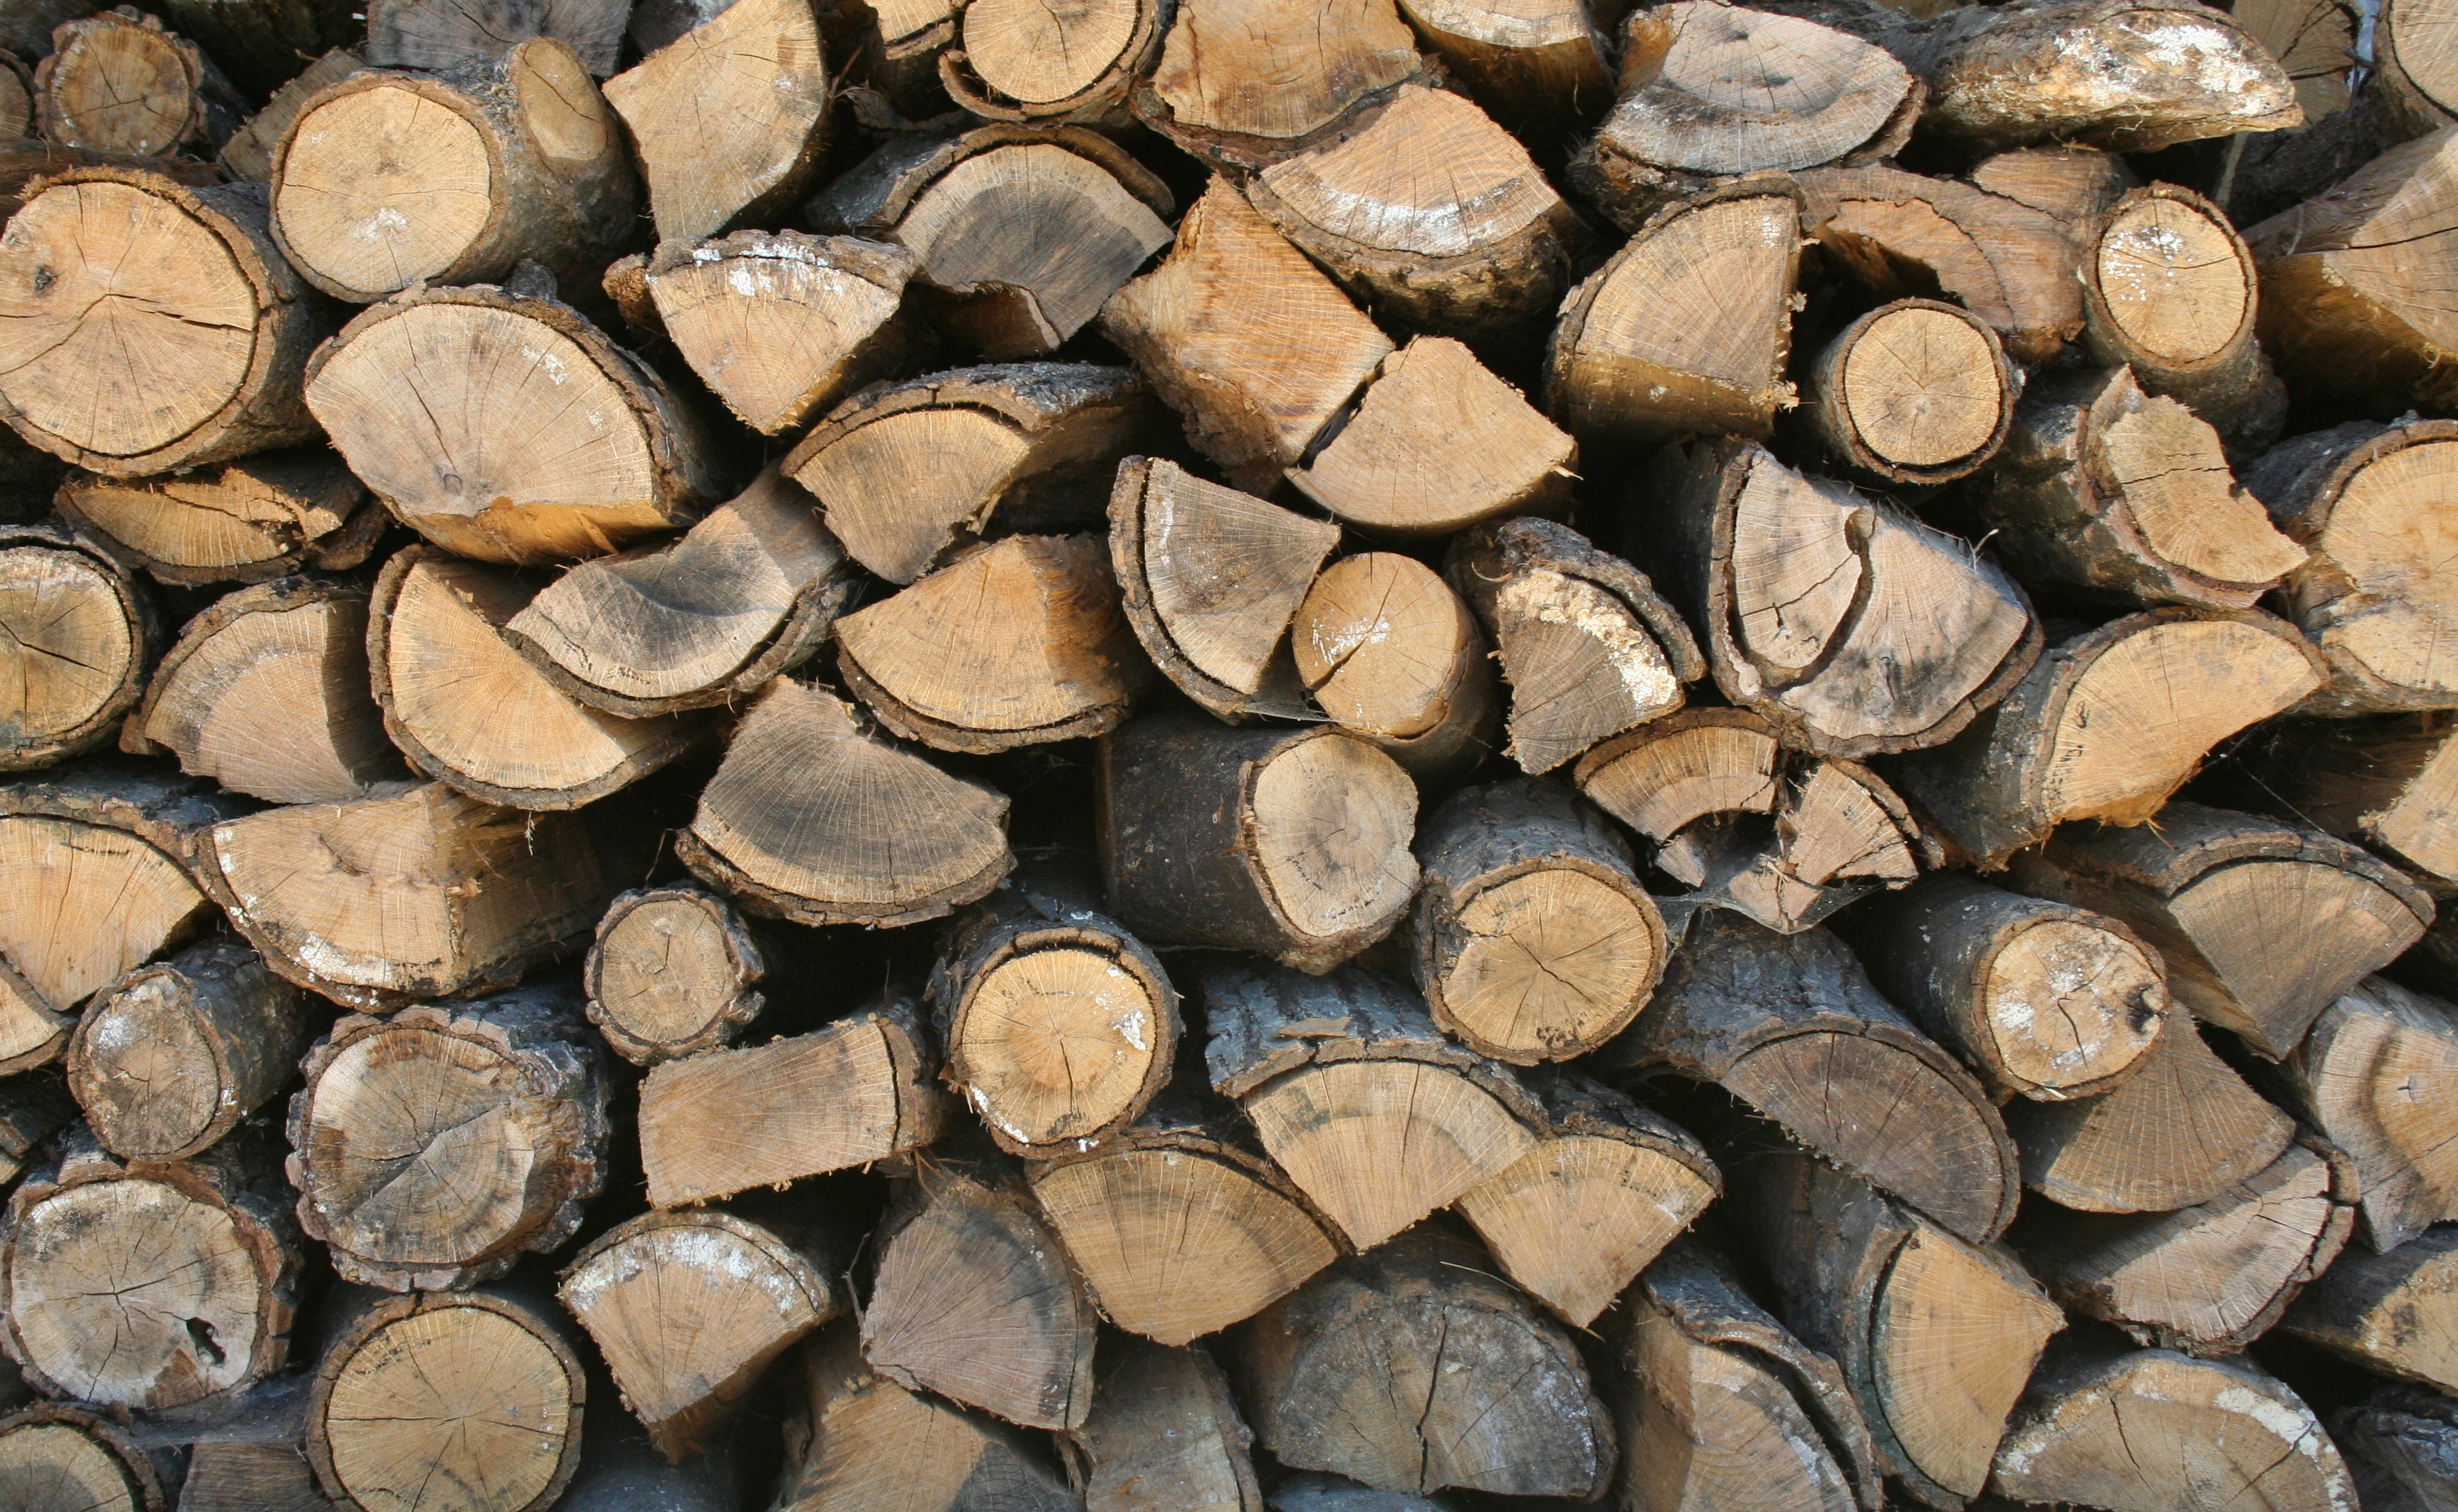 File:Stack of firewood.jpg - Wikimedia Commons